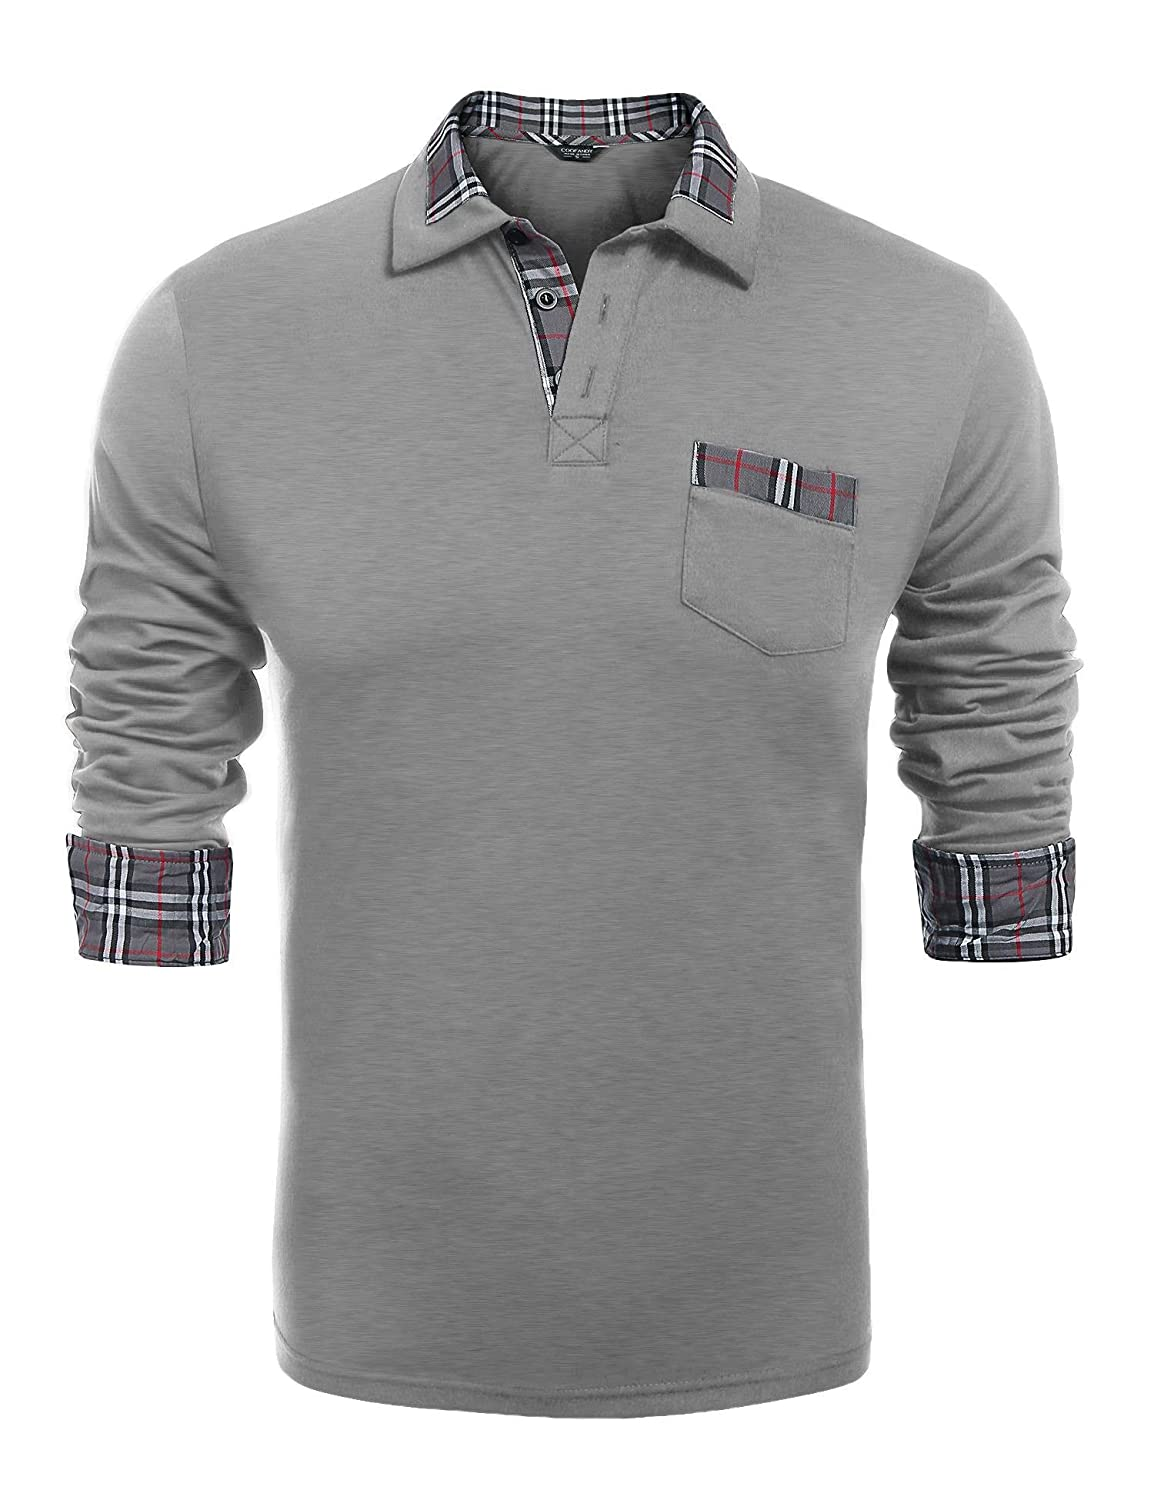 COOFANDY Men's Classic Casual Long Sleeve Plaid Collar Polo Shirt with Pockets